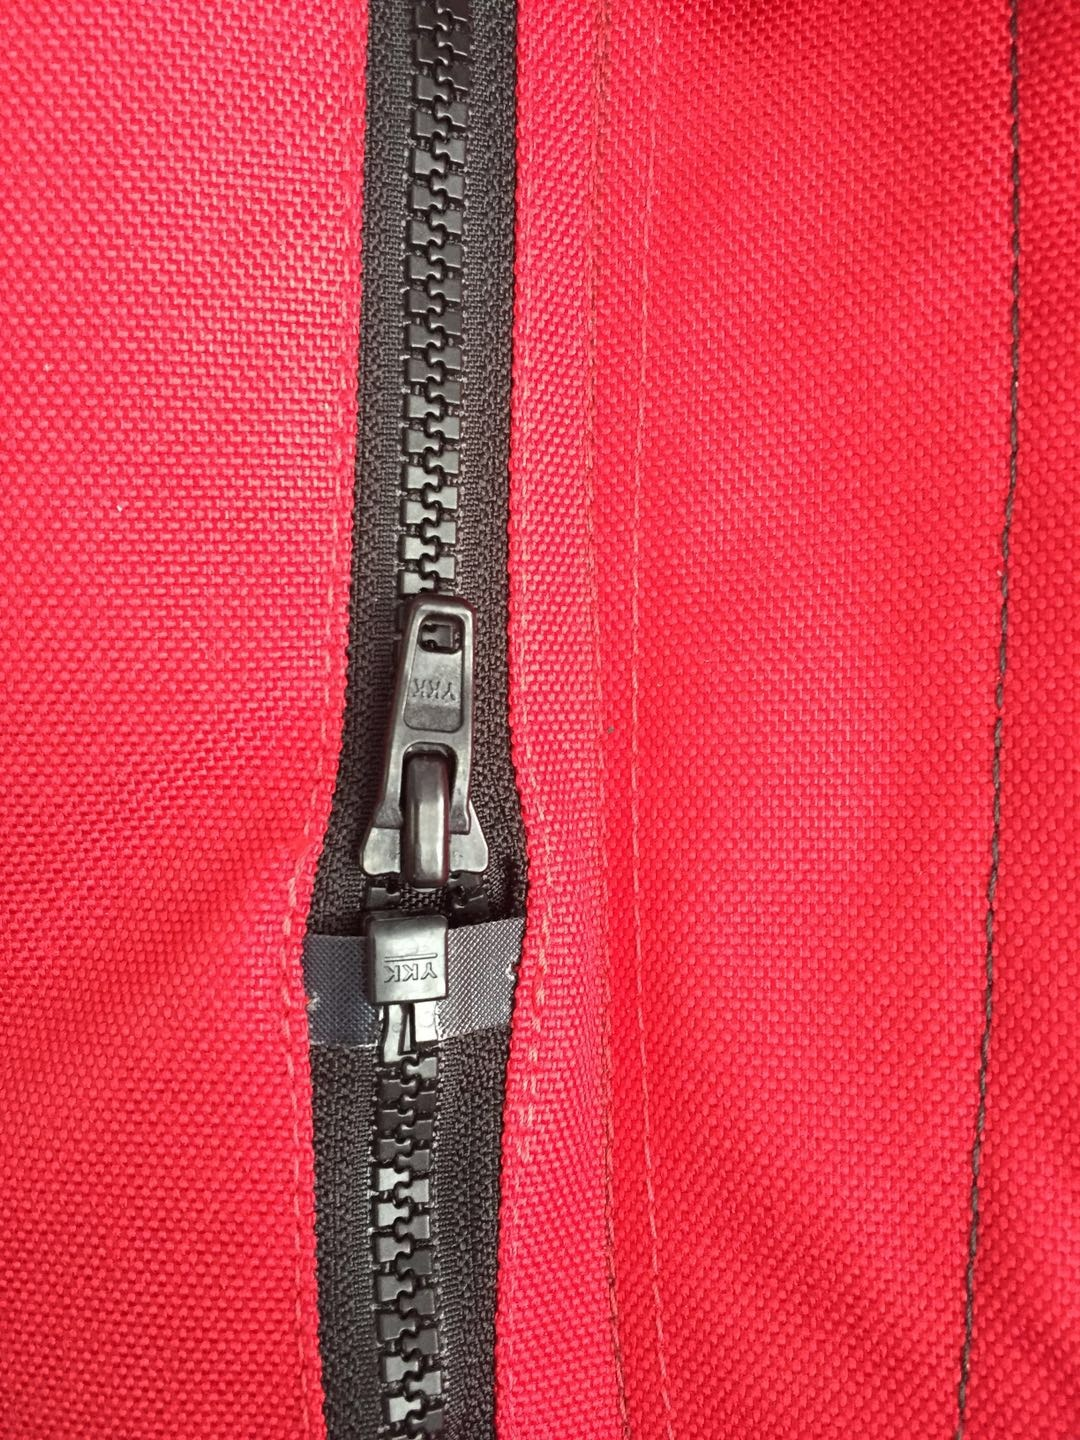 Scuba diving BCD technical diving backmount BCD 30lbs donut wing only with airway and LP hose oval corrugated hose